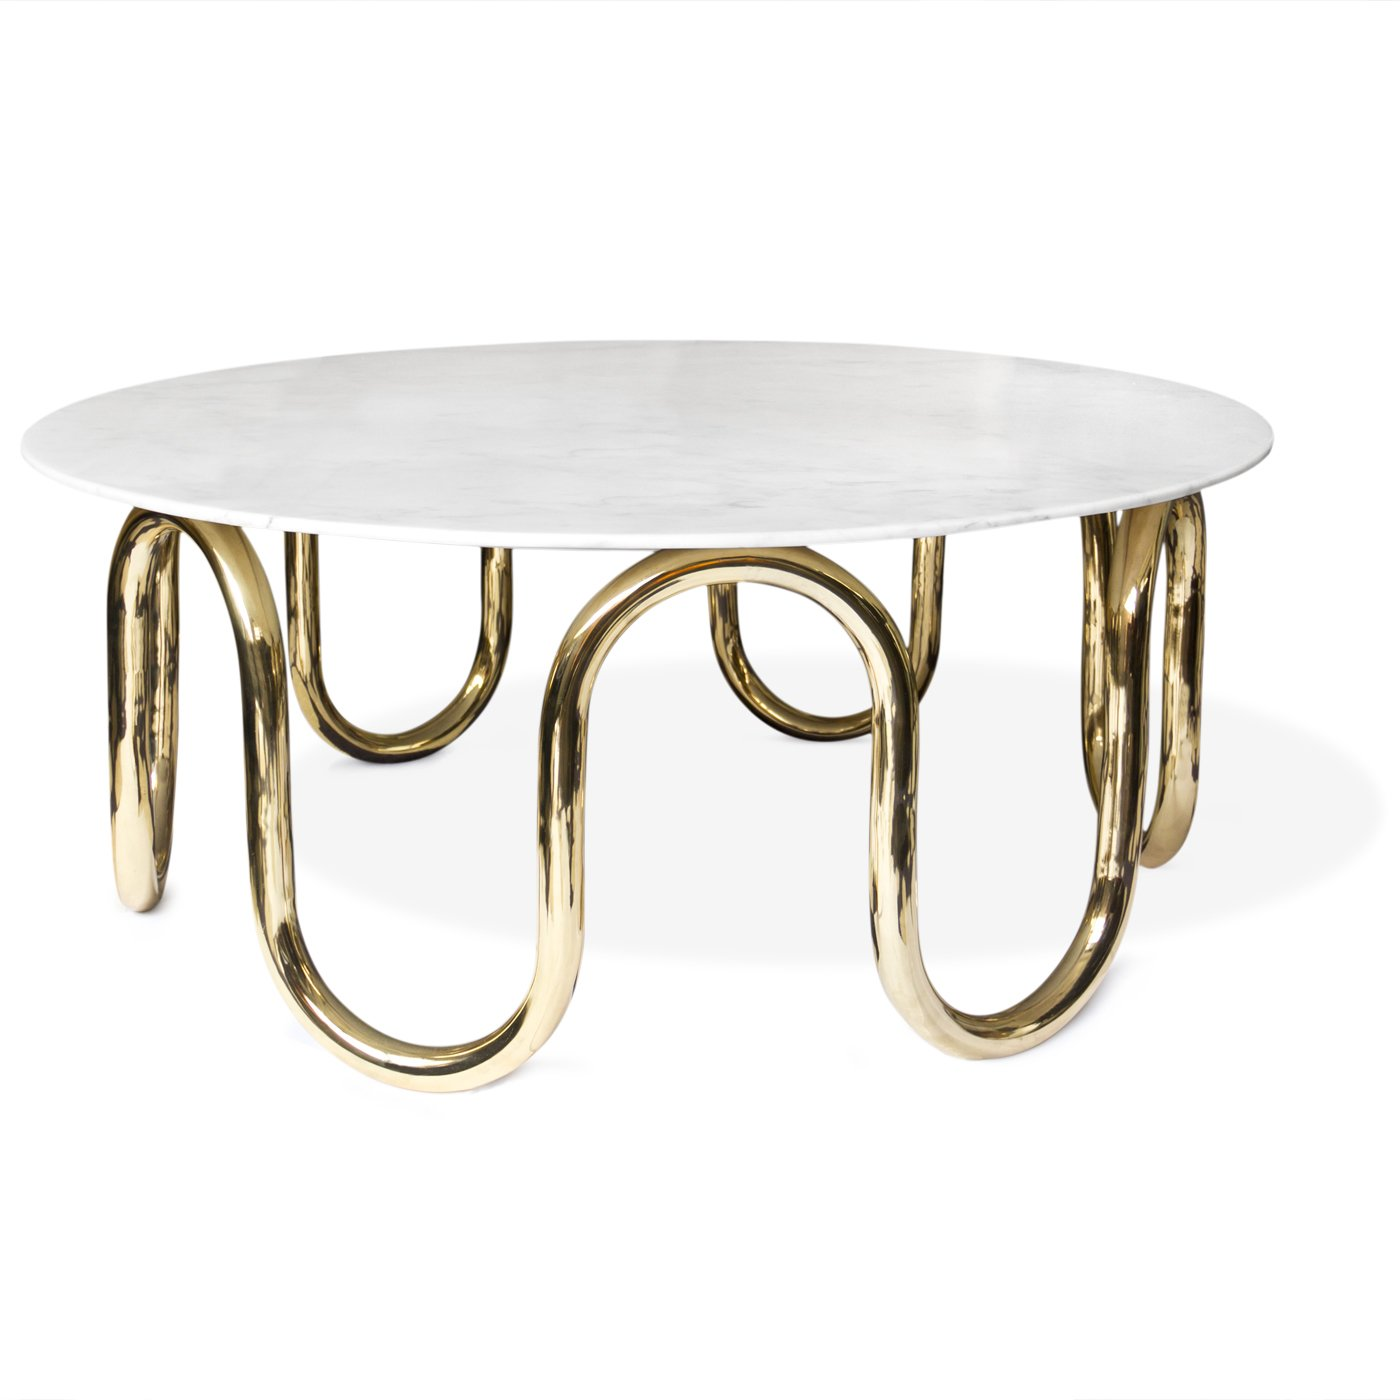 Adler's Scalintatella Cocktail Table was named for his favorite hotel in Capri. Carrera marble atop a hand polished brass base form a simple yet glamorous spot for drinks or magazines.  Photo 8 of 9 in Creativity and Constraint: A City Modern Preview